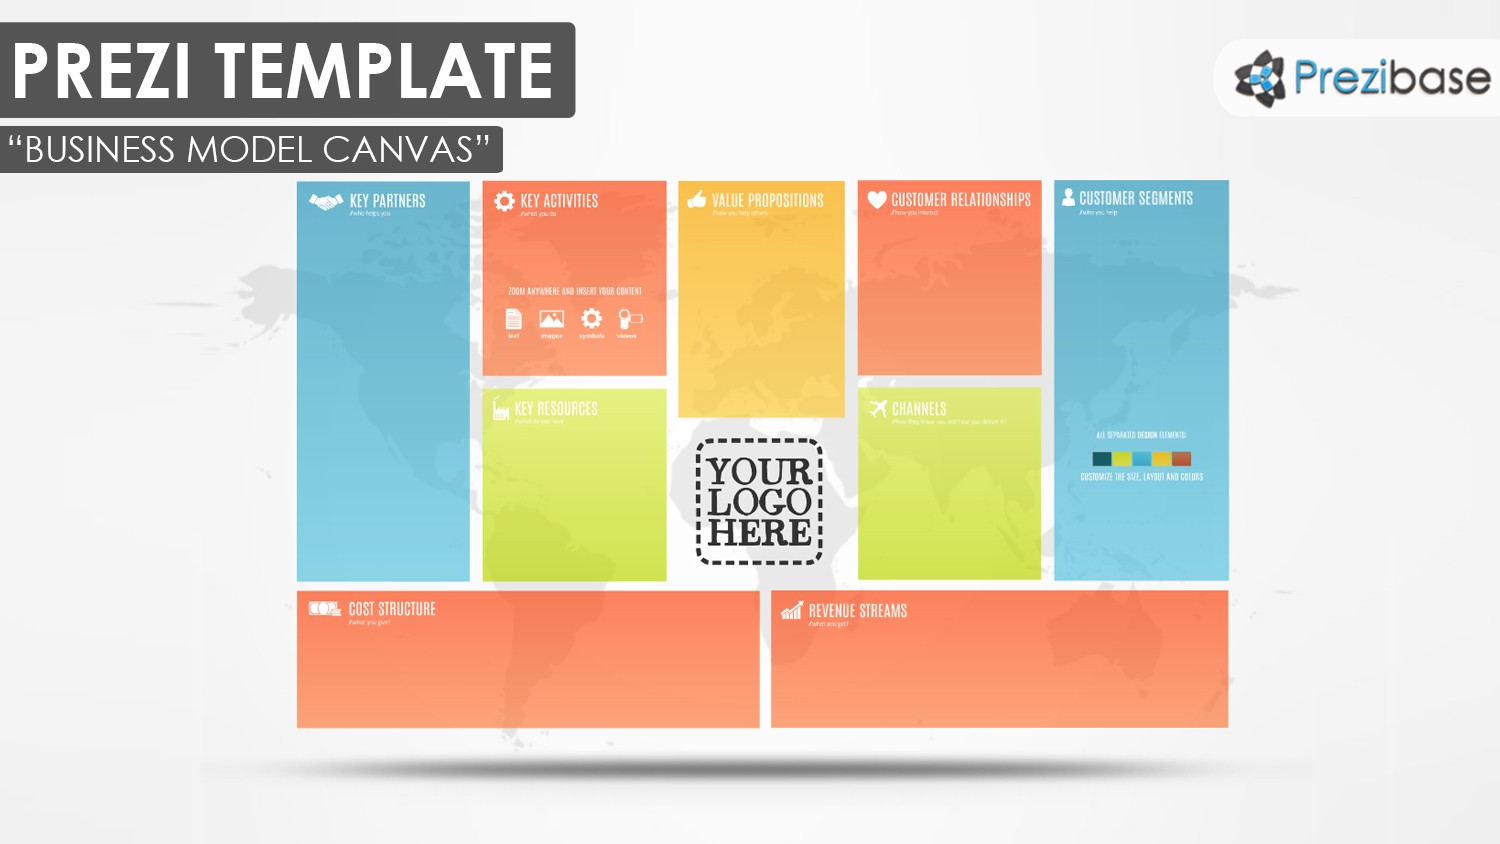 Business model canvas prezi template prezibase business model canvas colorful pitch world map prezi template accmission